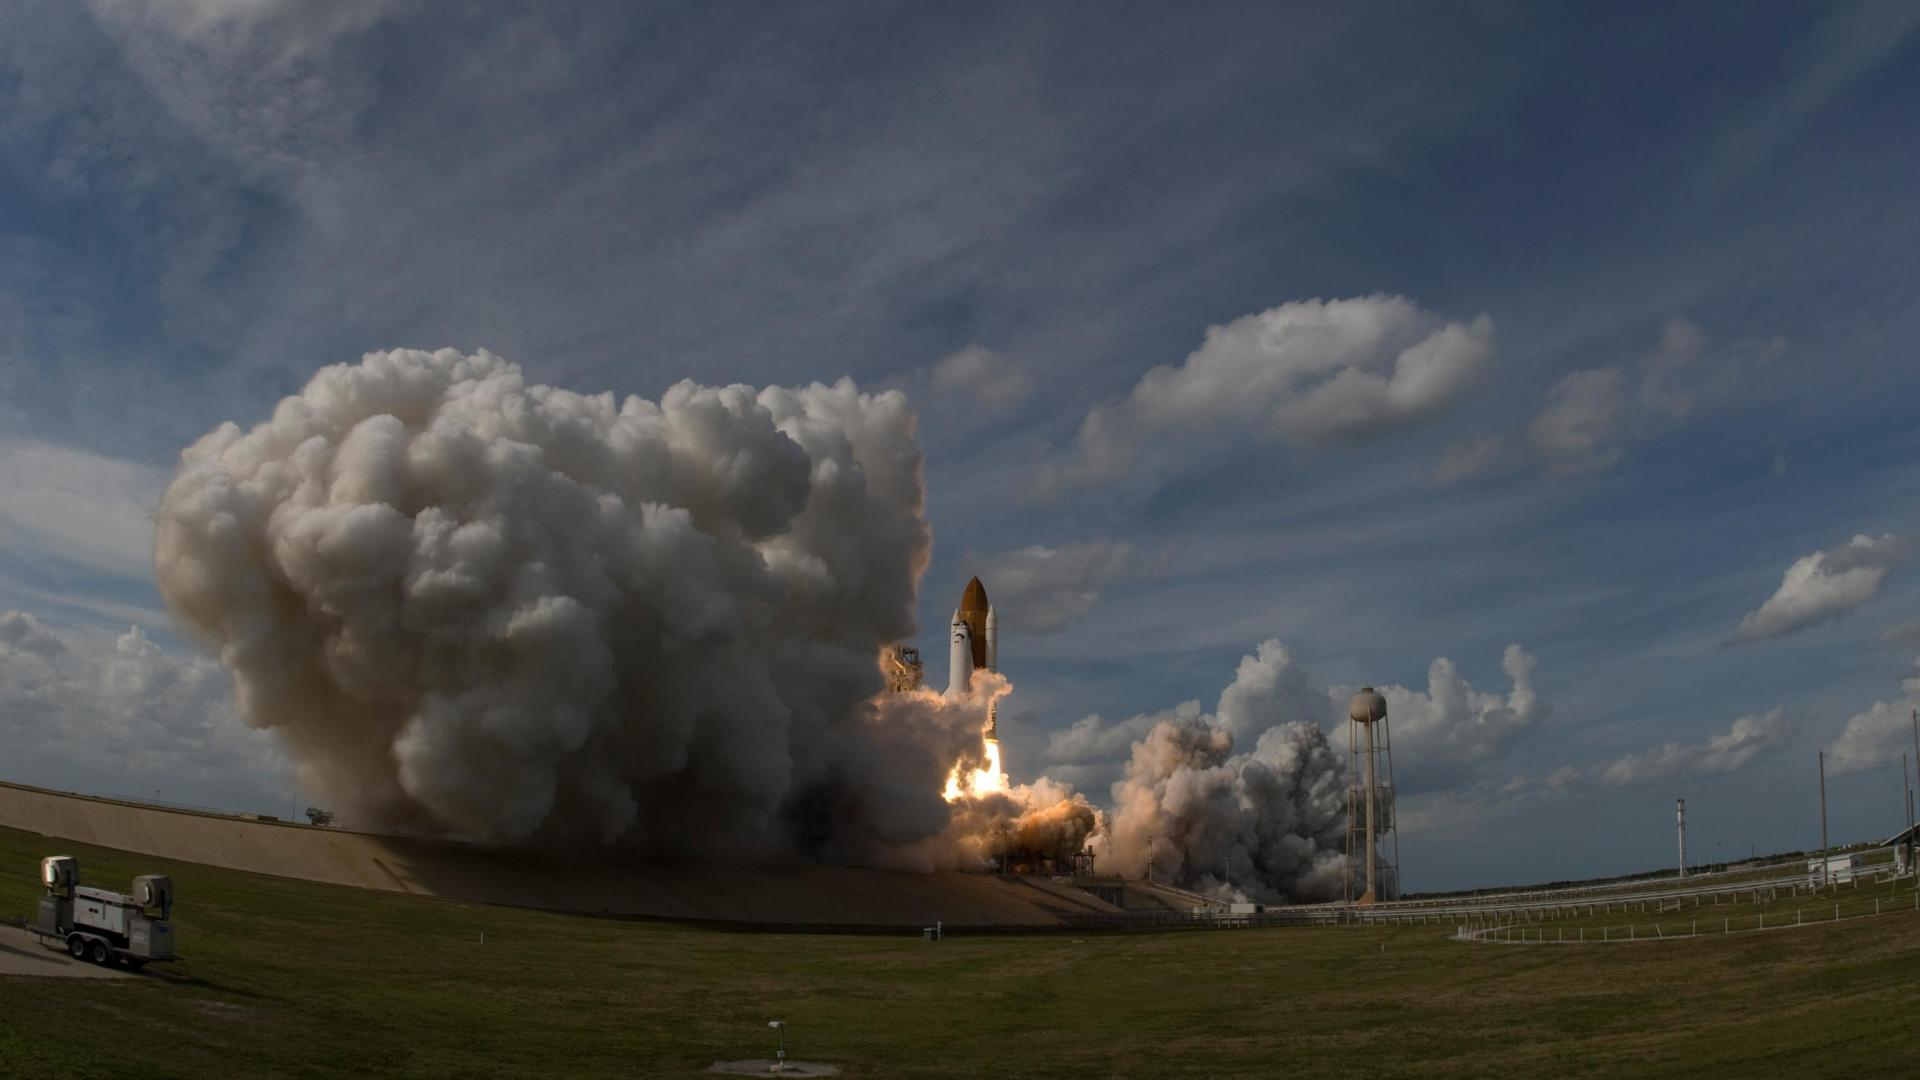 Space Shuttle Atlantis was launched on 7 February 2008